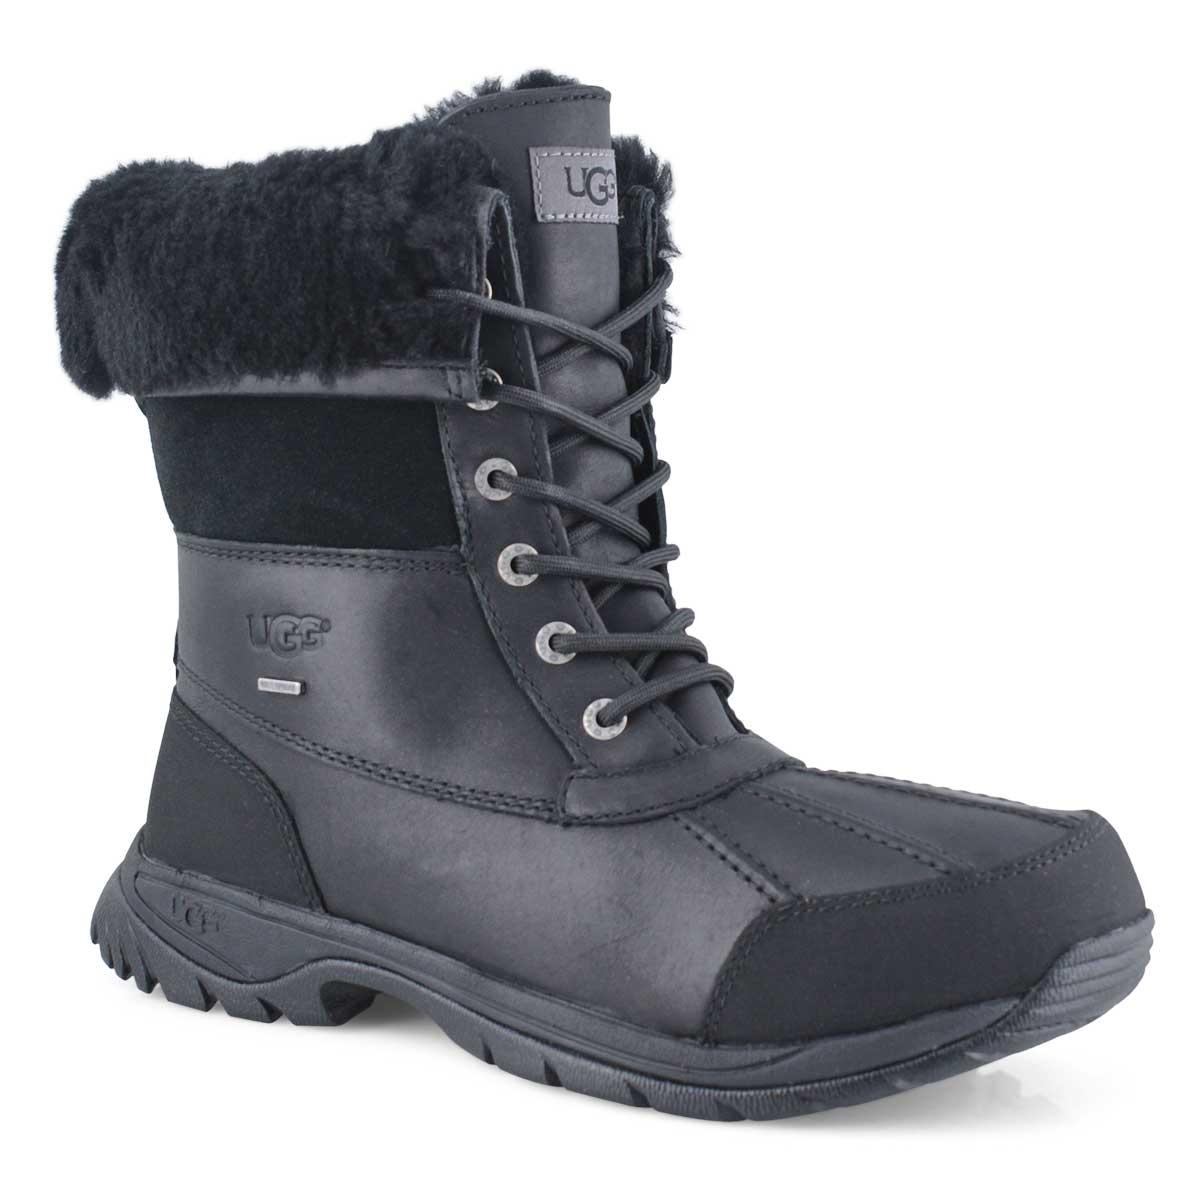 Mens Snow Boots Clearance Australia | Planetary Skin Institute